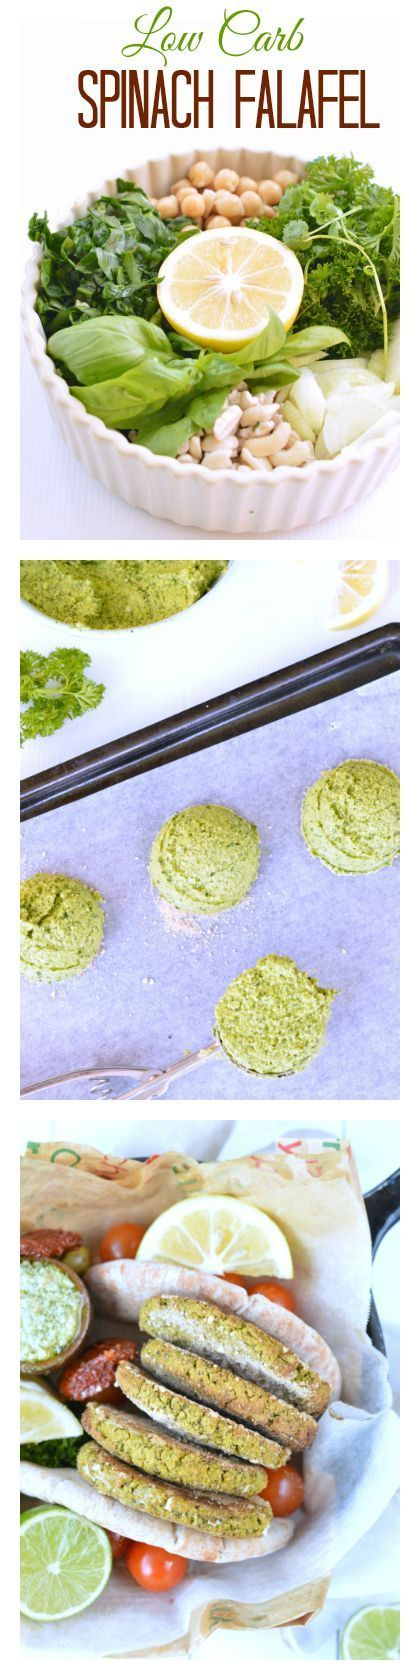 Easy Spinach Falafel ready in 10 min in a food processor. Vegan & low carb (9 g net carb per falafel) 5 g protein and only wholesome ingredients. Perfect to include in your clean eating plan as a meal or appetizer. Easy to make ahead and freeze too !